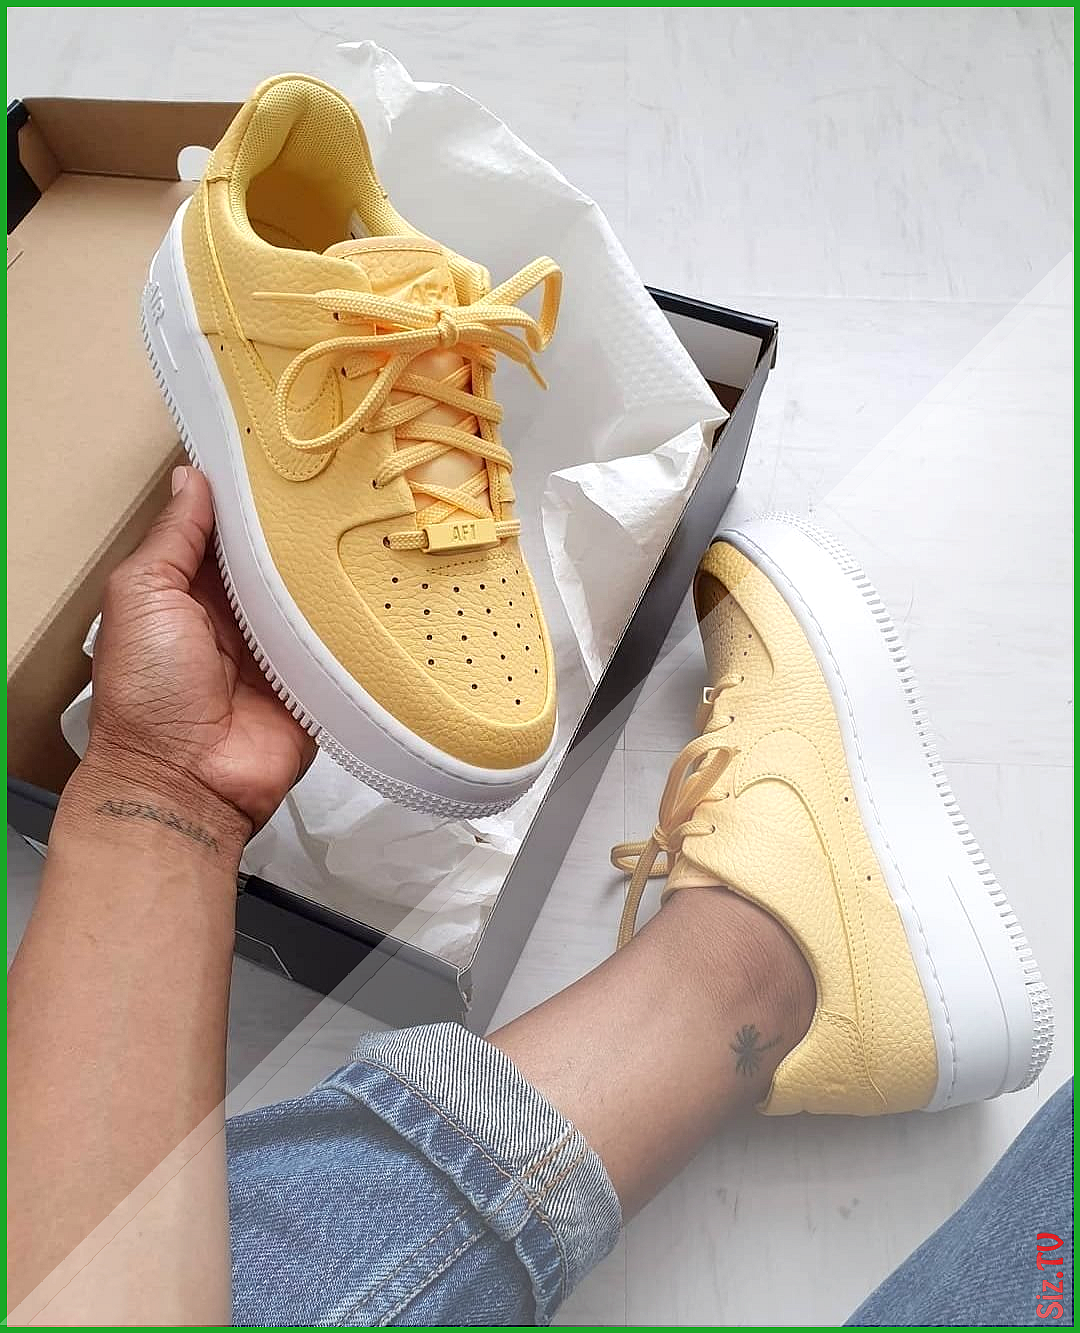 Nike Air Force 1 Sage Low In Gelb Ar5339 700 Nike Air Force 1 Sage Low In Gelb Ar5339 700 Everysize Everysize Nik Aesthetic Shoes Nice Shoes Sneakers Fashion